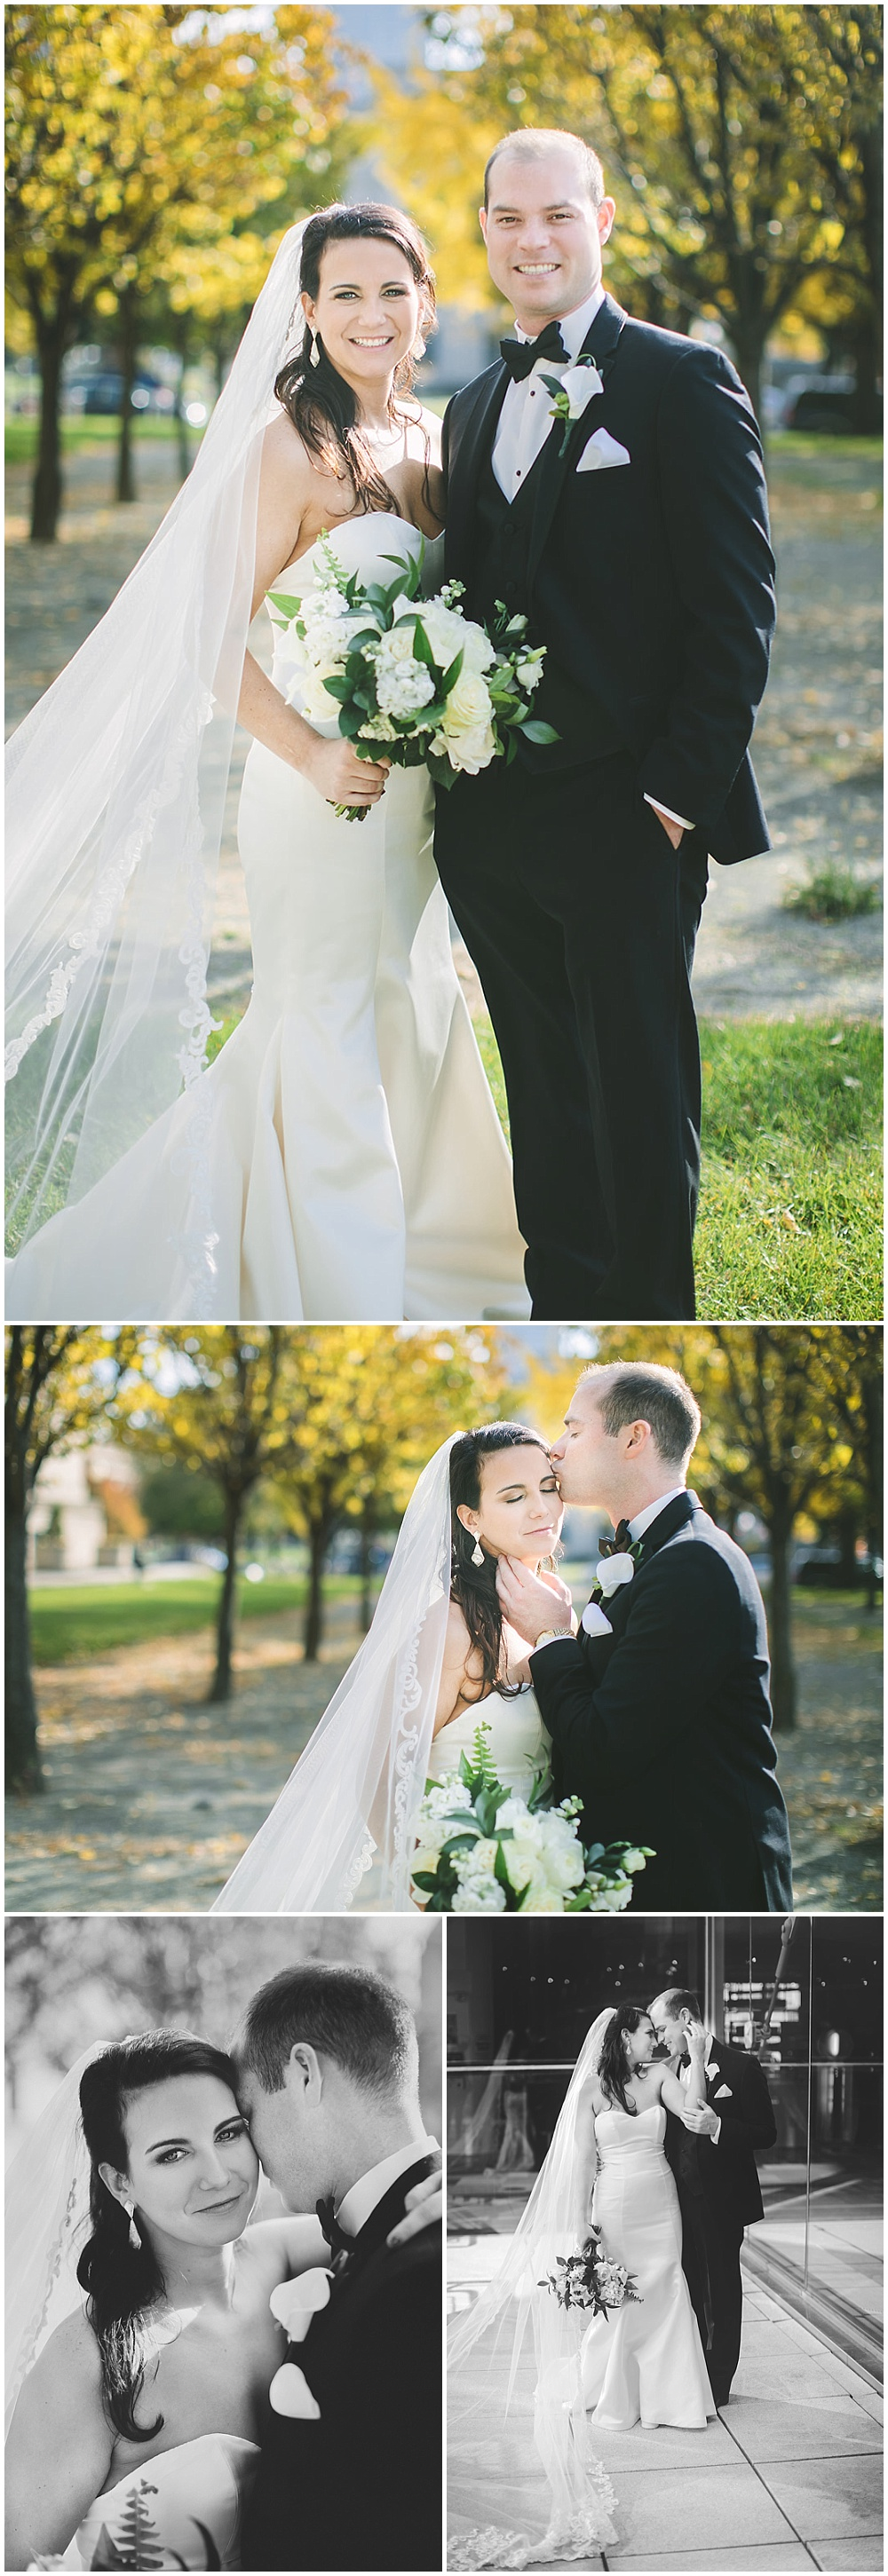 A timeless, modern wedding celebration at the Indianapolis Public Library. Fall outdoor bride and groom portraits. | Jessica Dum Wedding Coordination